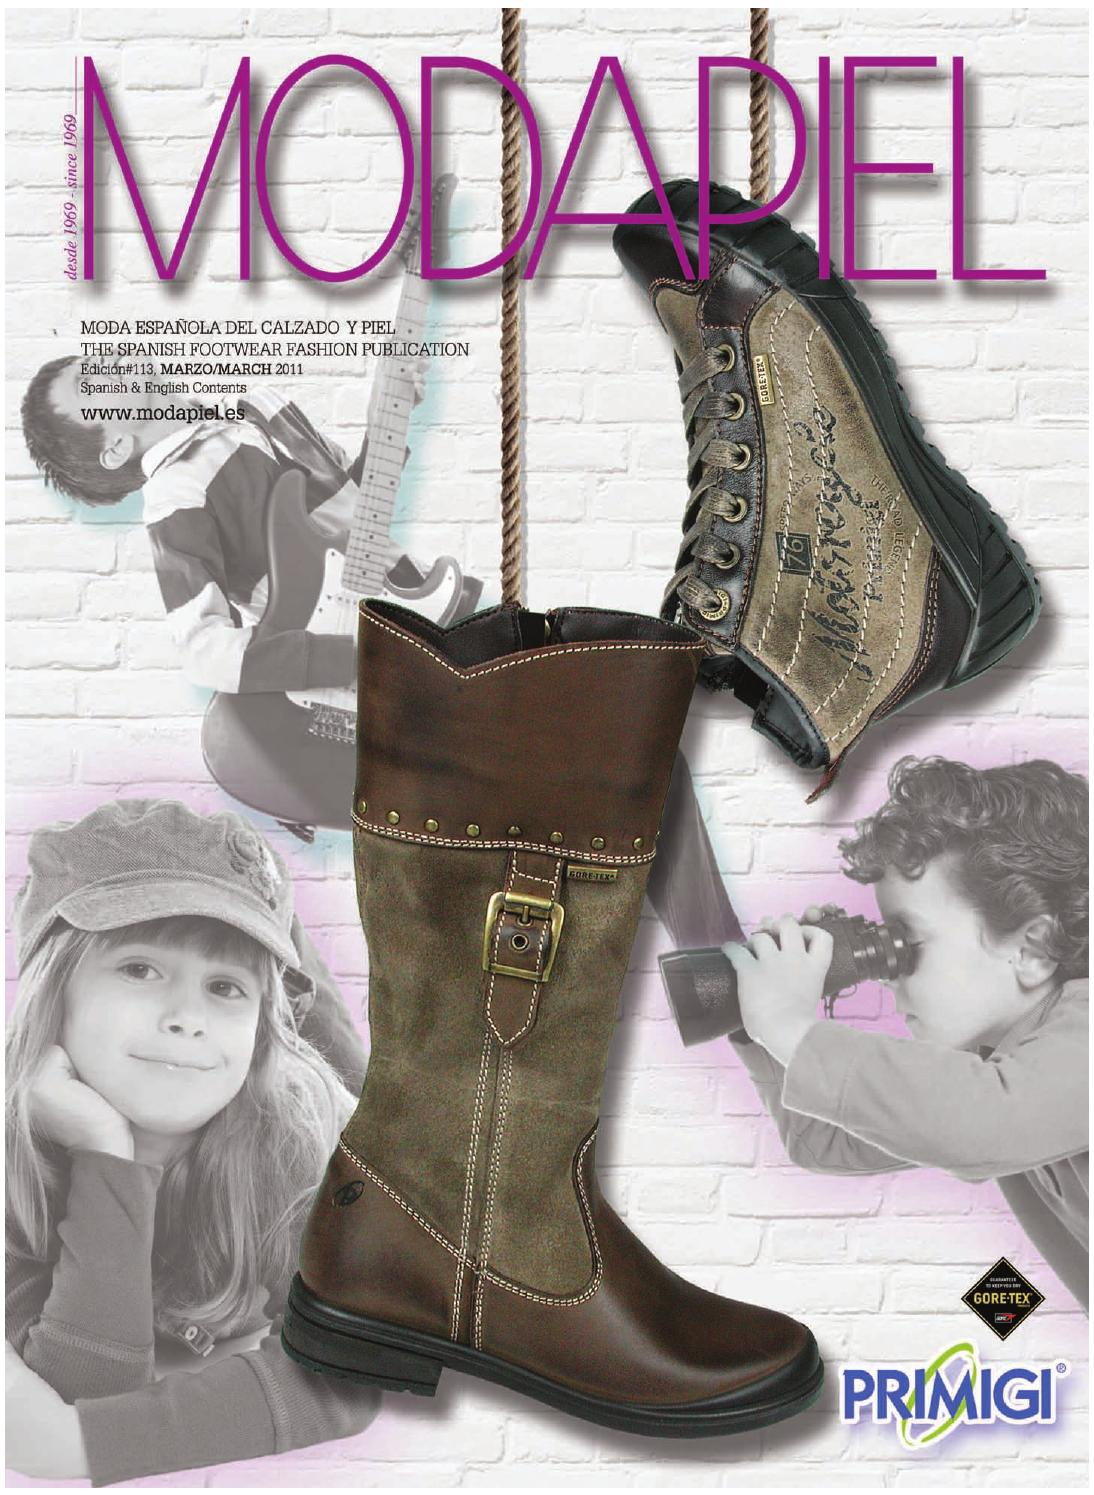 86d8bdfd17a2a Modapiel 113 Shoes and accessories magazine by Prensa Técnica S.L. - issuu